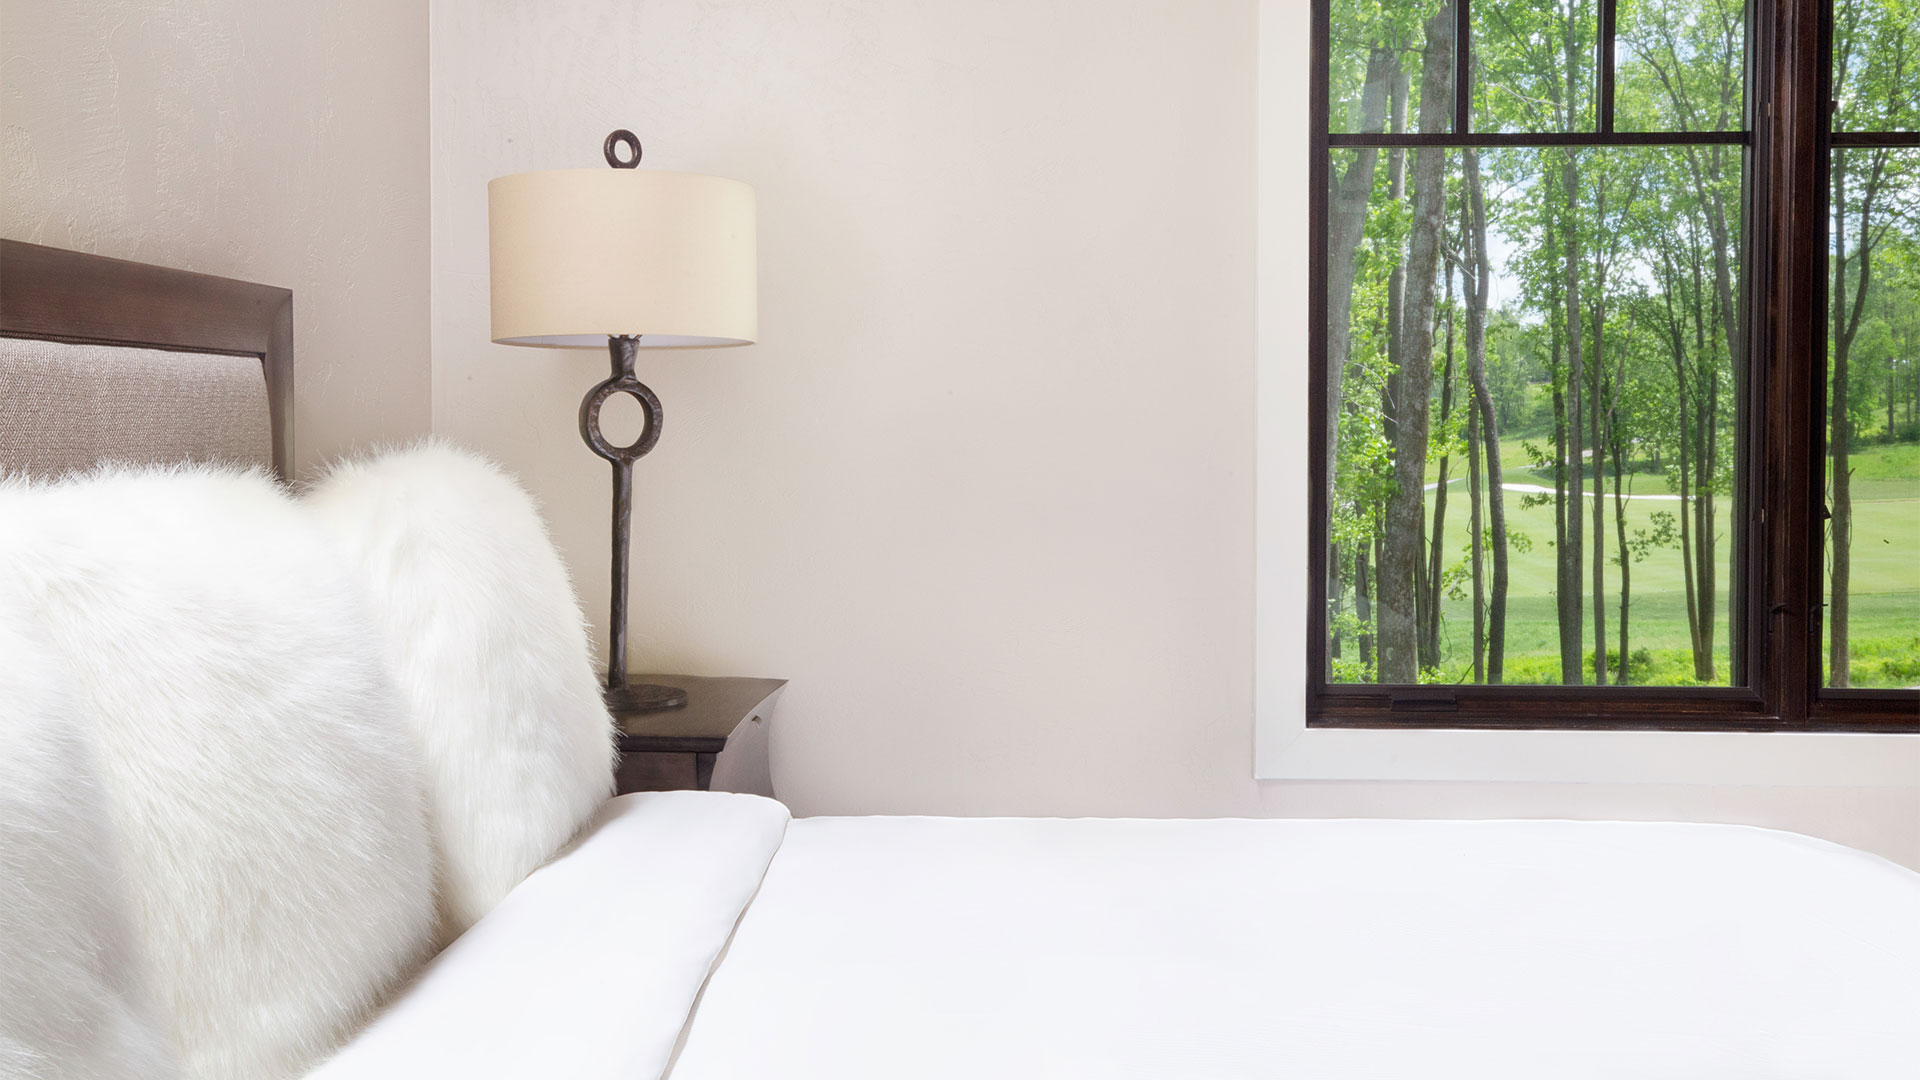 detail shot of a dogwood bedroom. There is a elegant bed with all white linens and a bedside table with a lamp